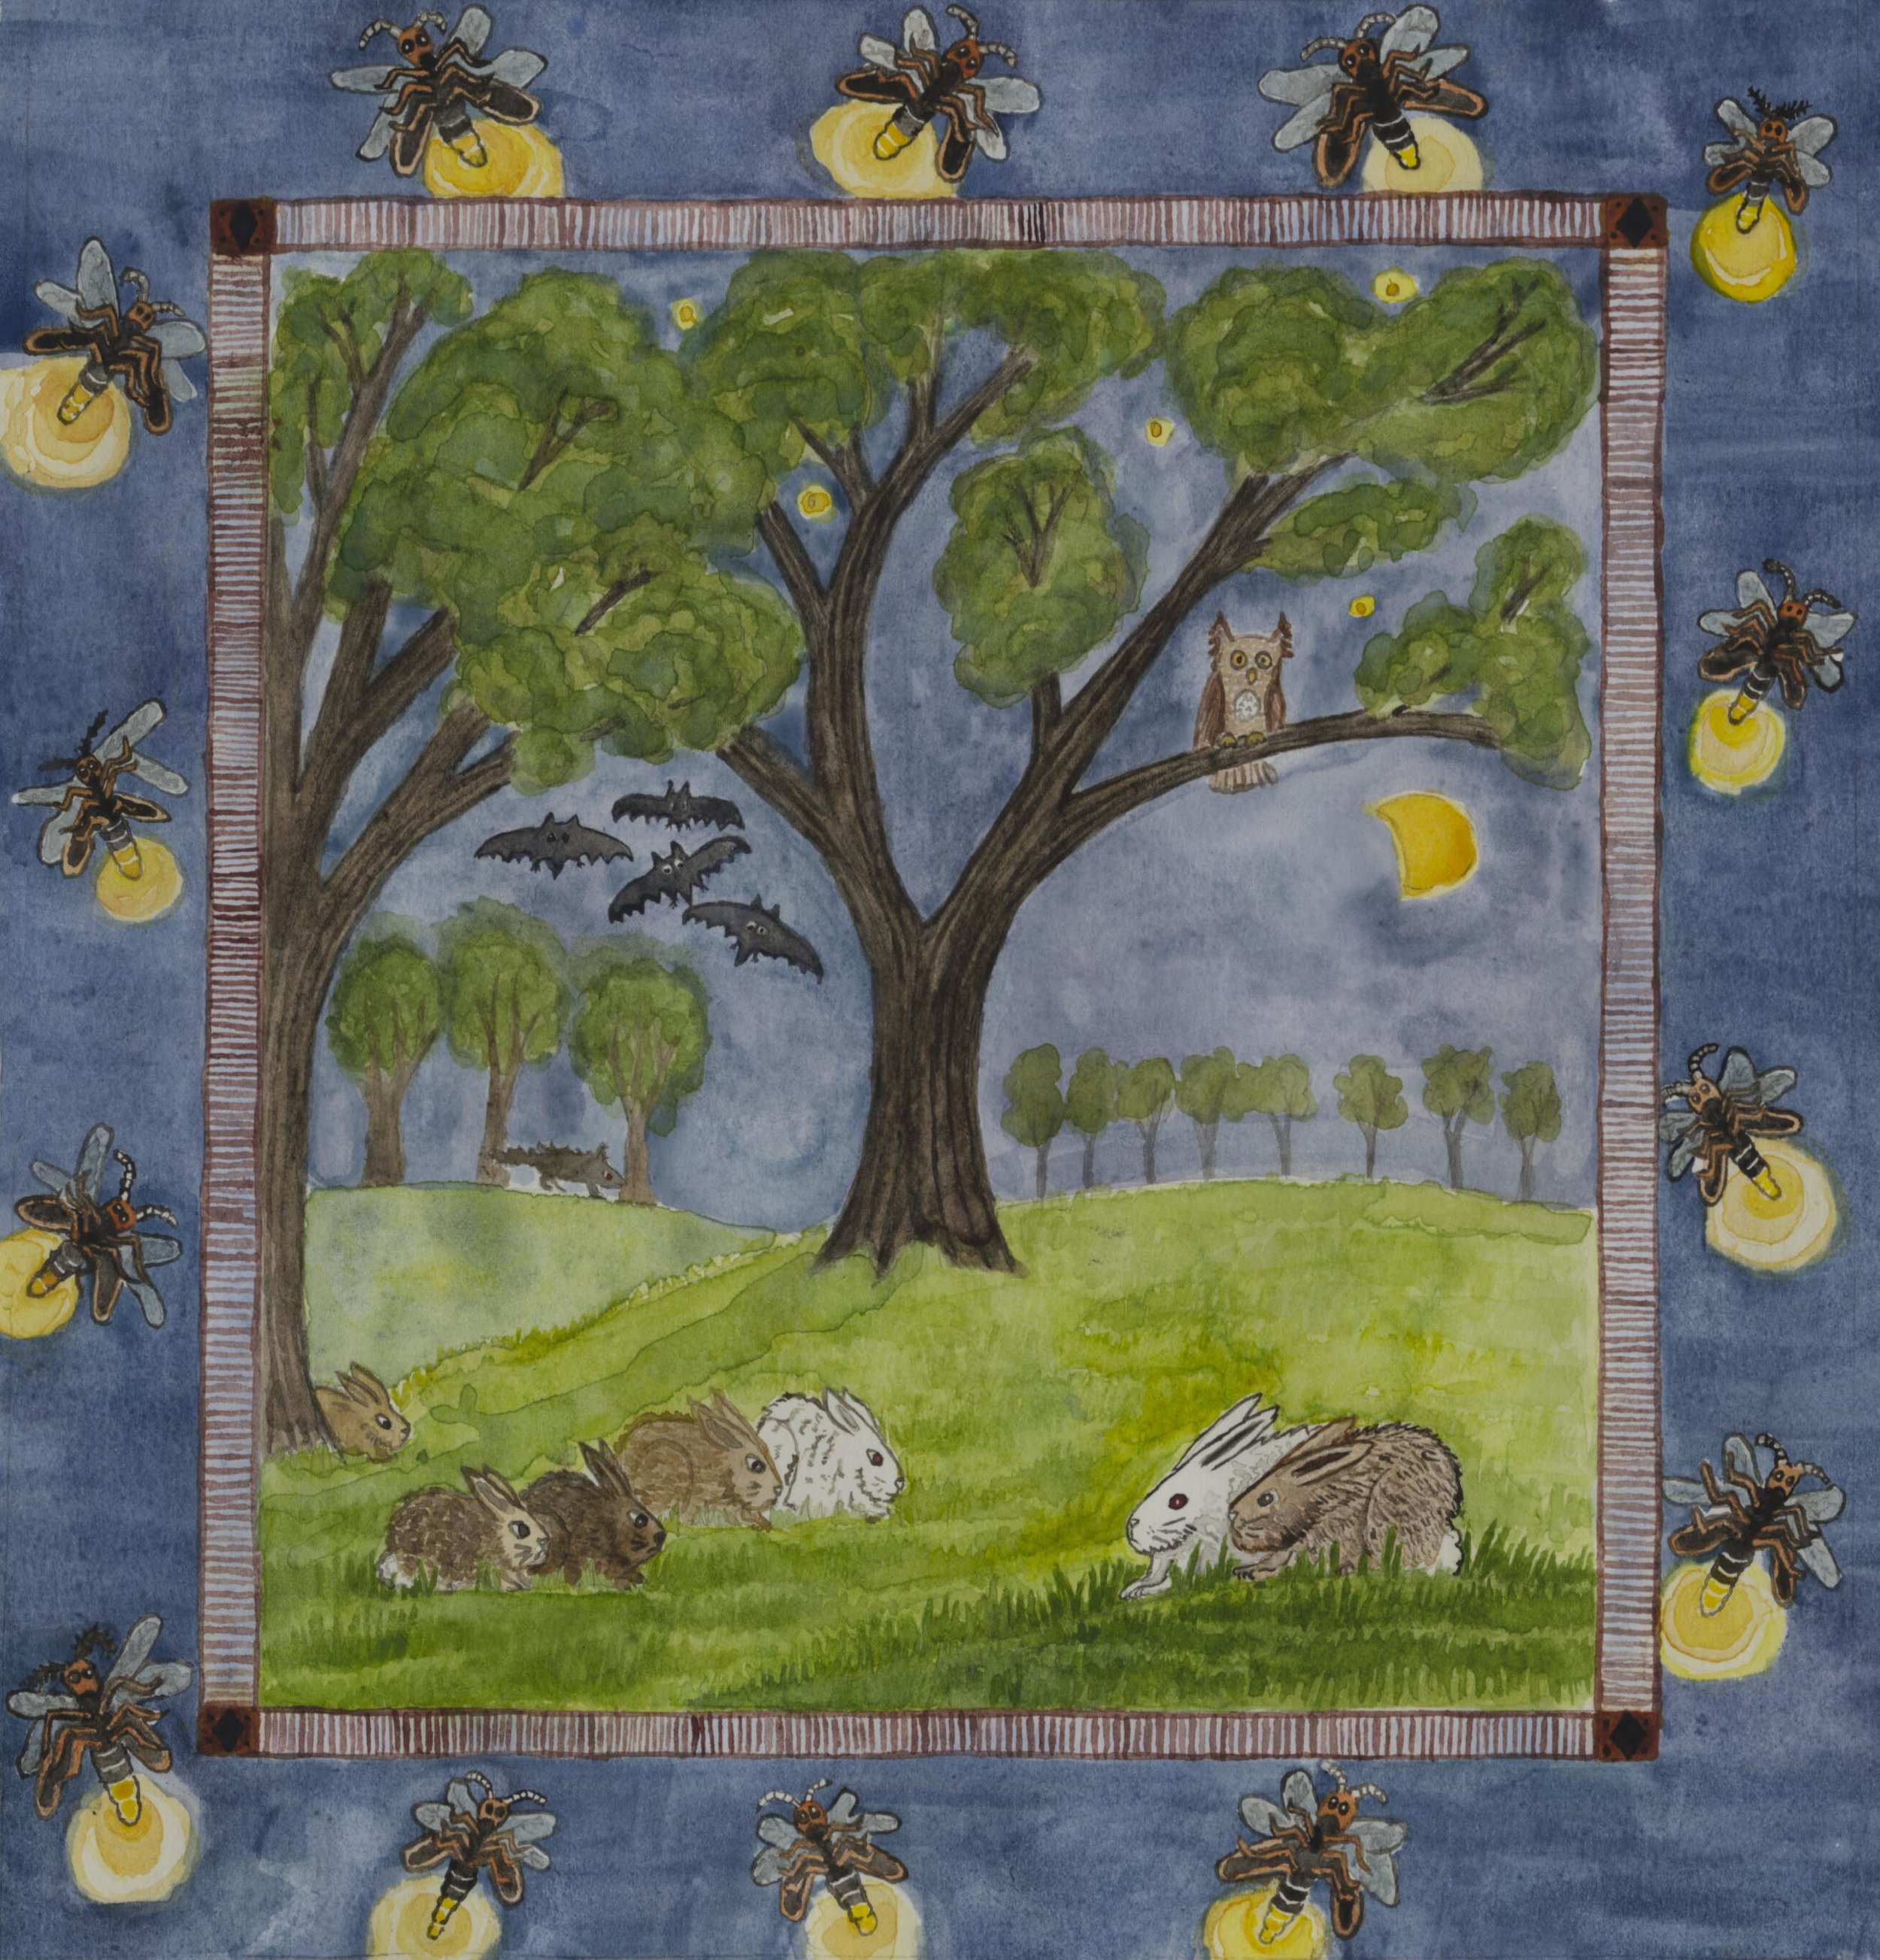 Five rabbits and fireflies